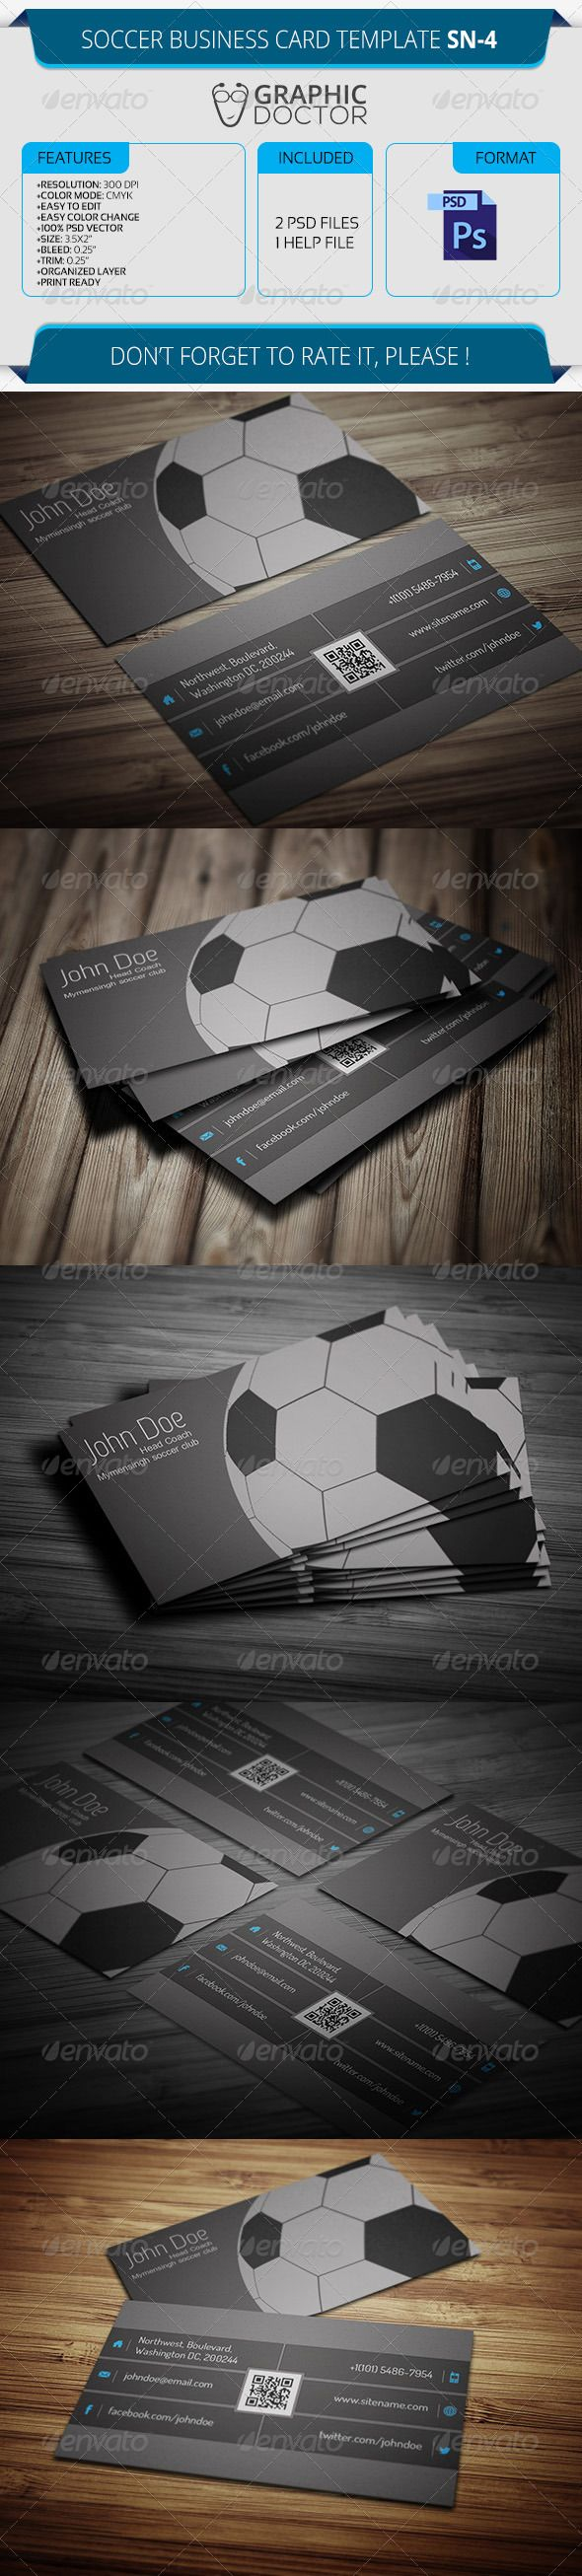 Soccer business cards images free business cards soccer business card template sn 4 creative business card soccer business card template sn 4 magicingreecefo magicingreecefo Gallery